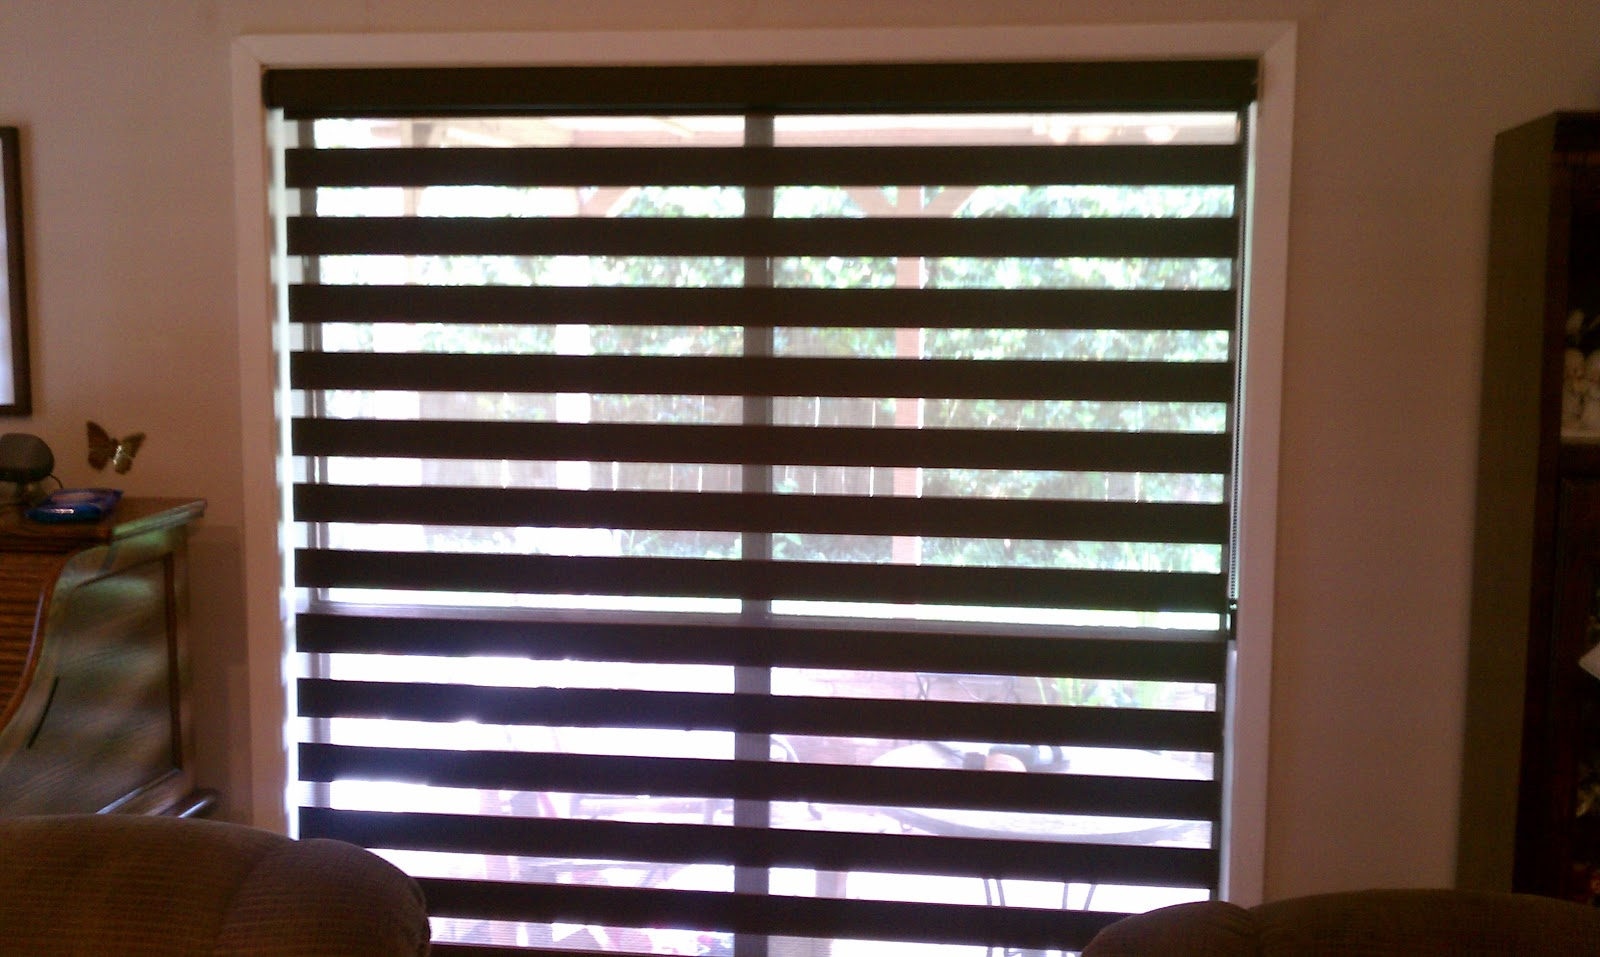 Illusions Transitional Shades By Signature Series Budget Blinds Offer Incredible Light Control Features And Style